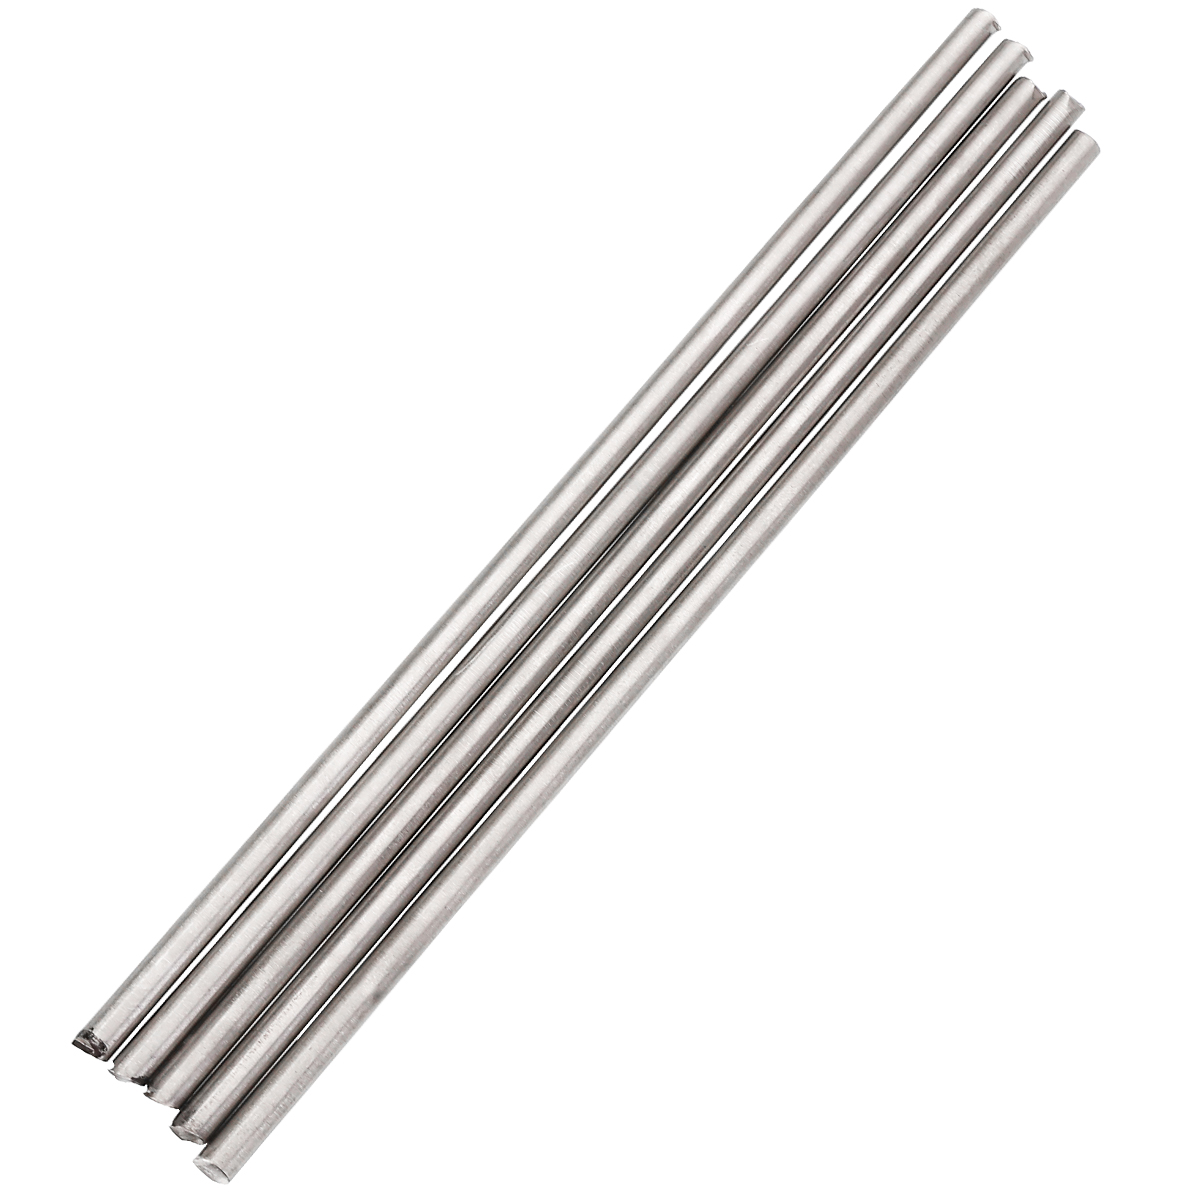 5pcs Round Titanium Ti Bar Grade 5 GR5 Metal Rod Diameter 4mm Length 250mm For Manufacturing Gas Turbine Components